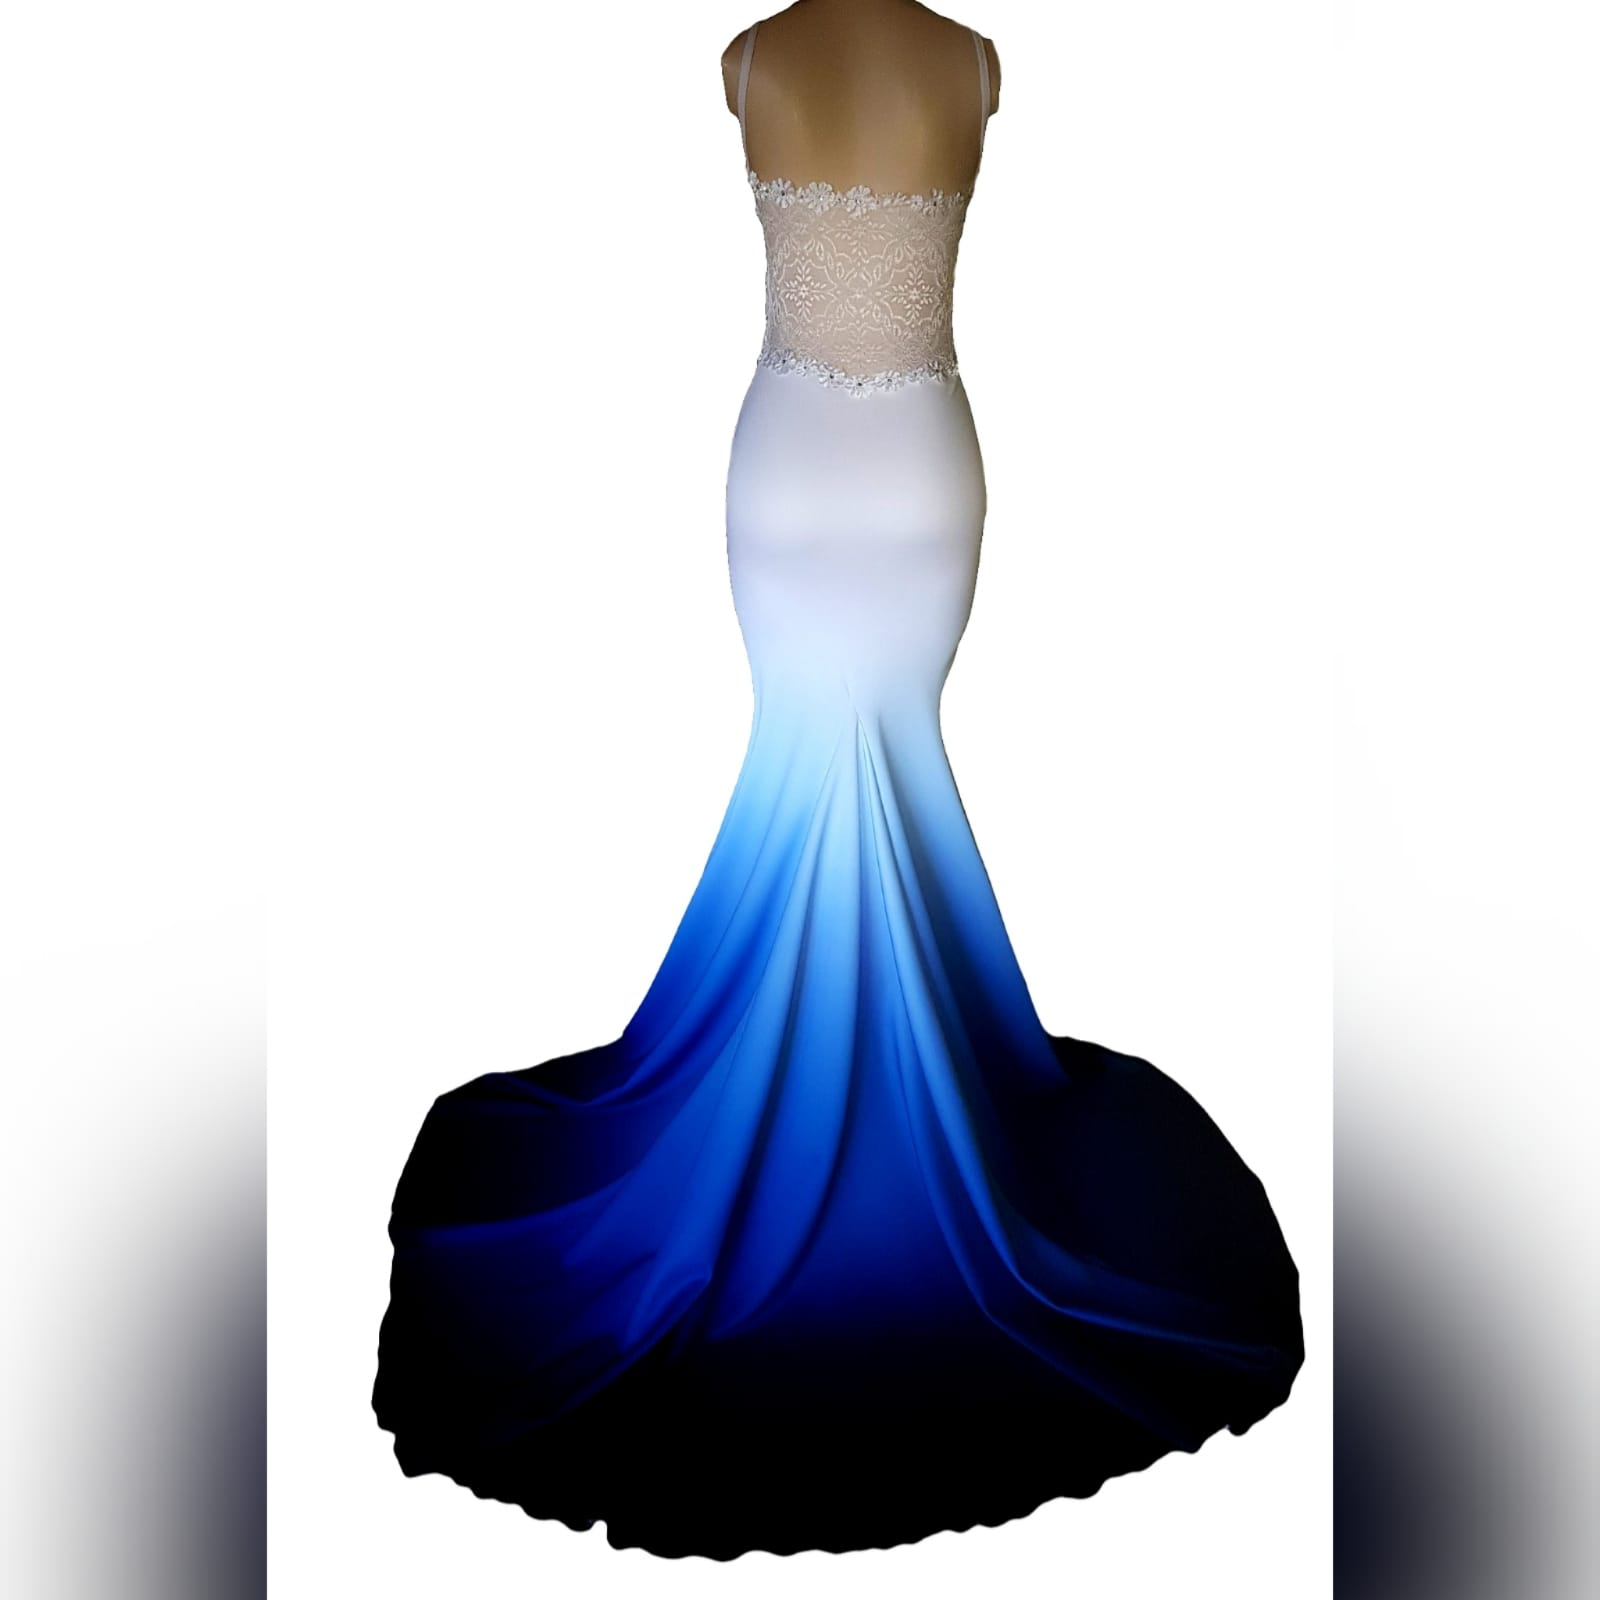 """Blue and white ombre mermaid dress with a train 4 <blockquote>""""don't you ever let a soul in the world tell you that you can't be exactly who you are"""" lady gaga</blockquote>a famous design of mine loved by many, created for another client🙂blue and white ombre mermaid dress with a train. With a low back covered in a translucent lace. Sweetheart neckline with thin shoulder straps, neckline detailed with lace and a touch of beads."""